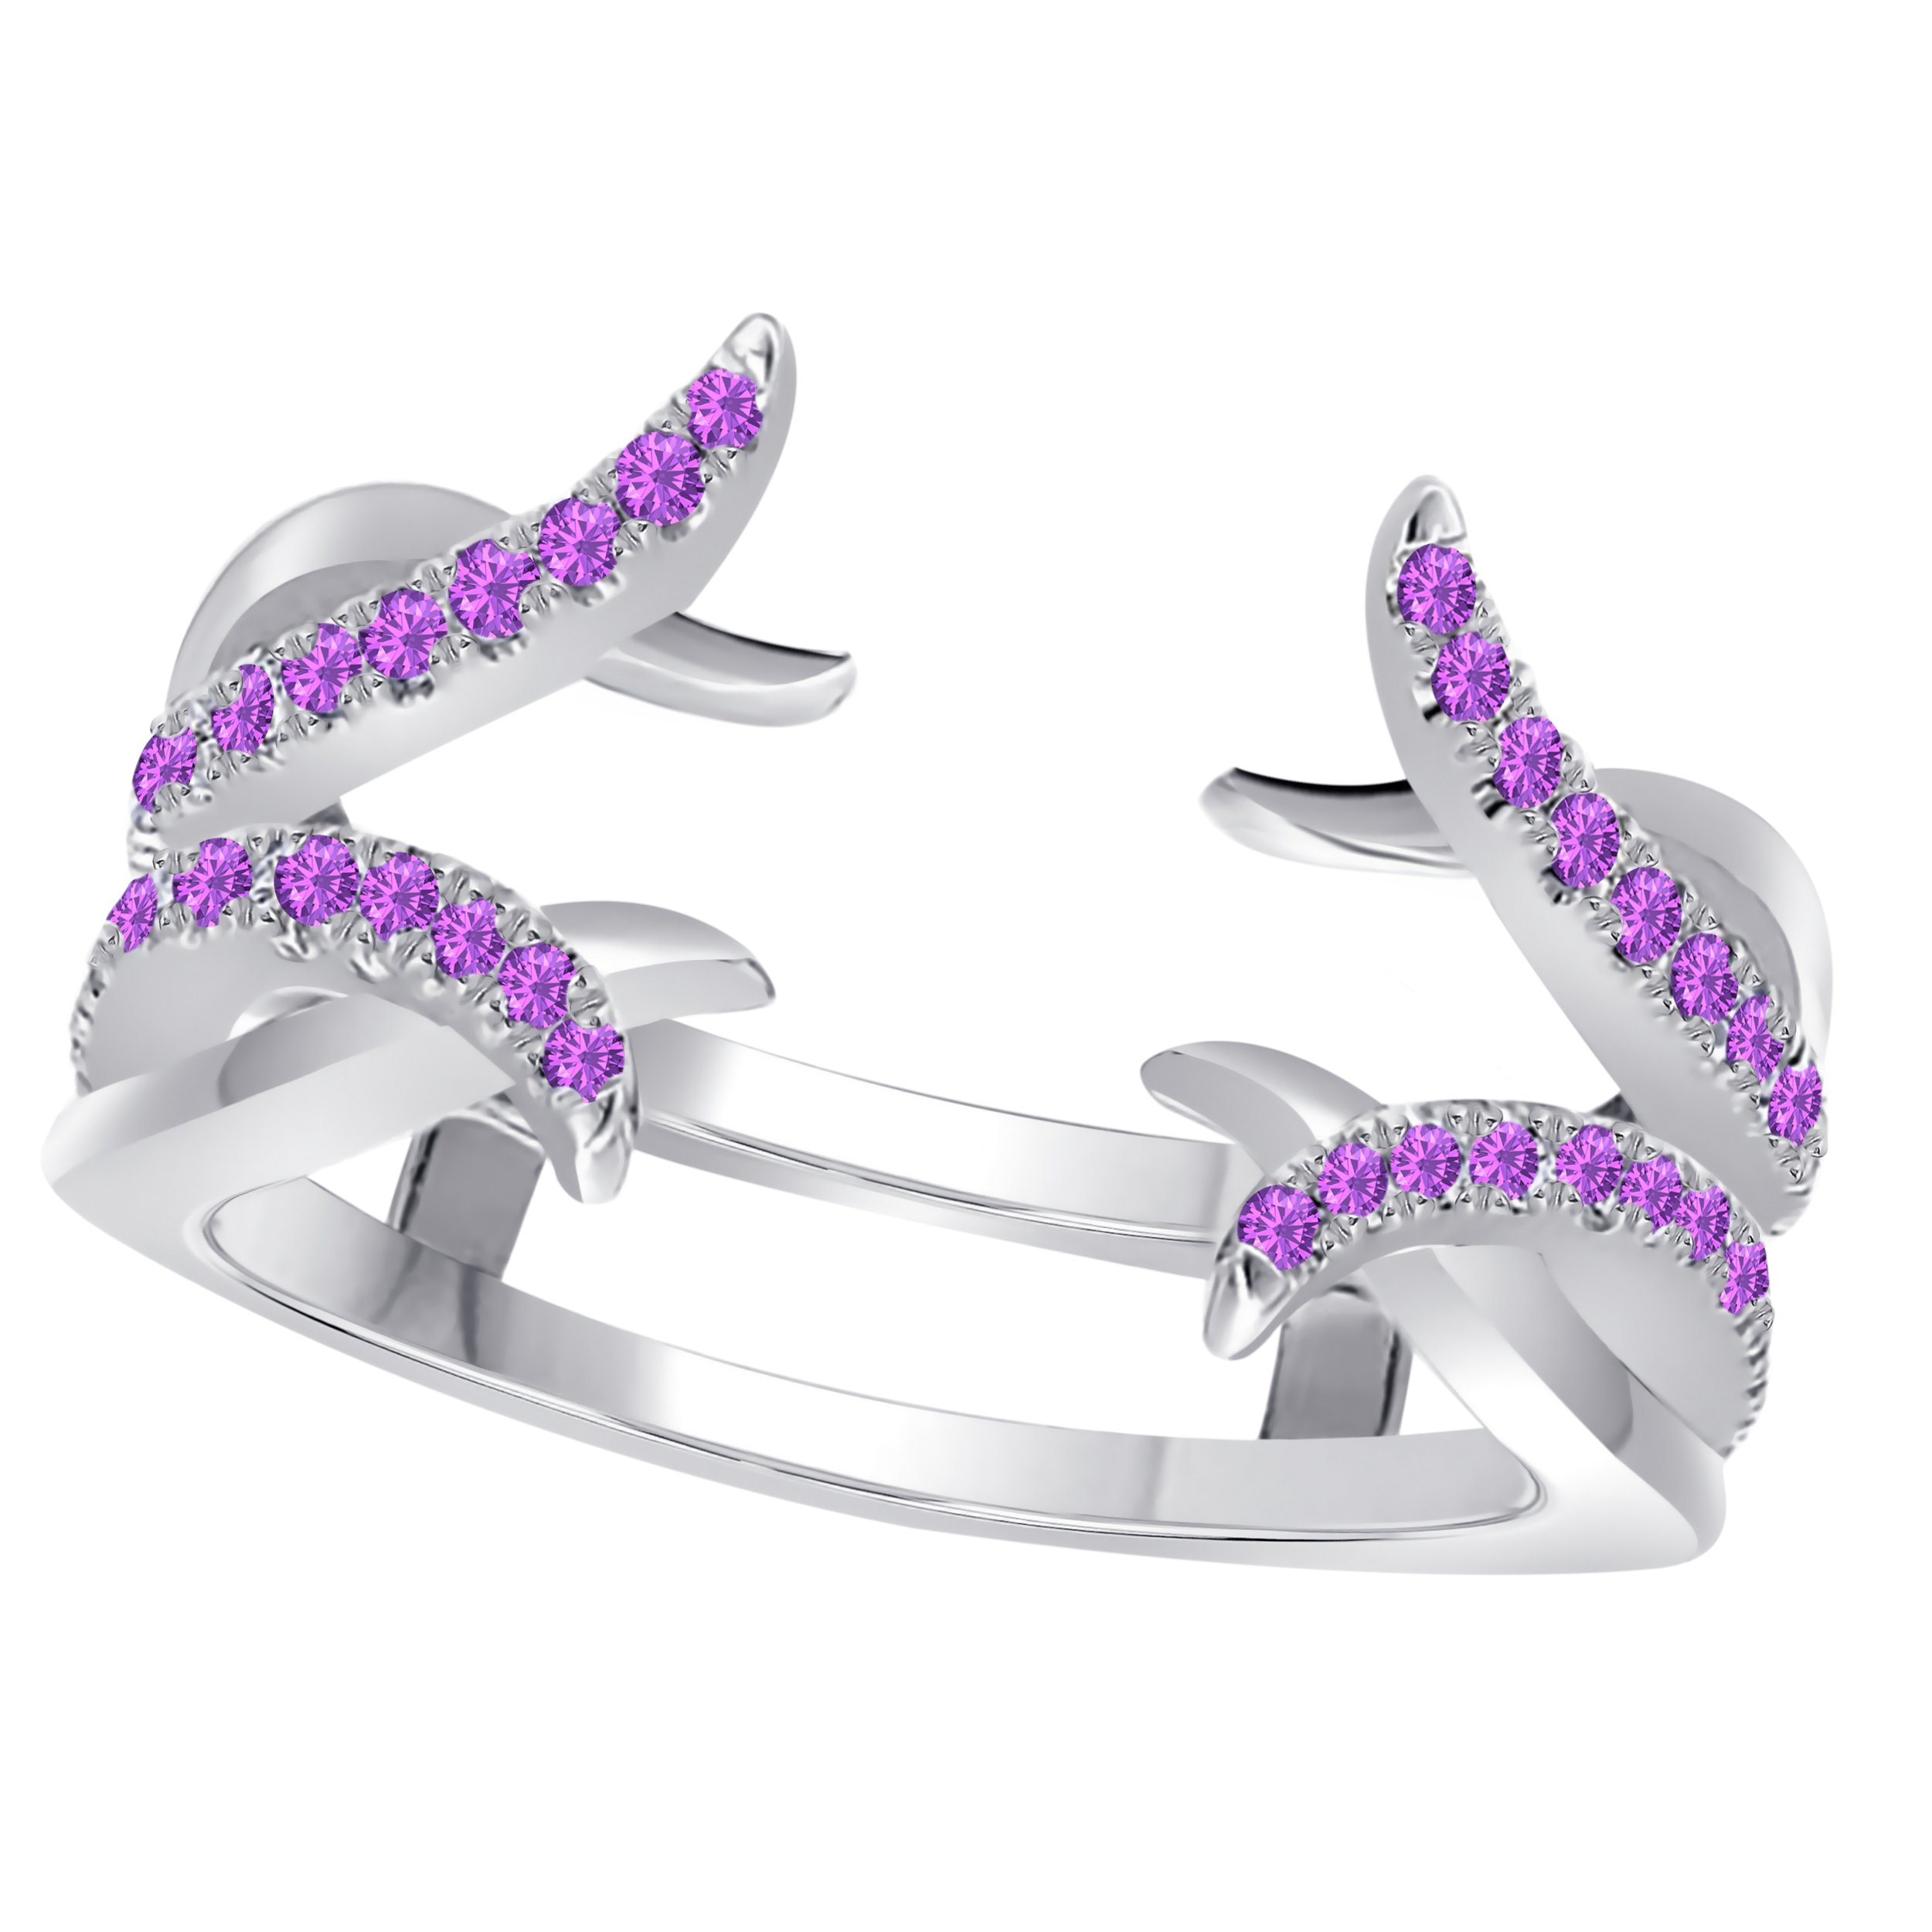 SRJEWELS Sterling Silver Plated Alloy Created Amethyst Round Solitaire Ring Guard Wrap Enhancer Jacket Wedding Engagement Ring Size 4 to 11